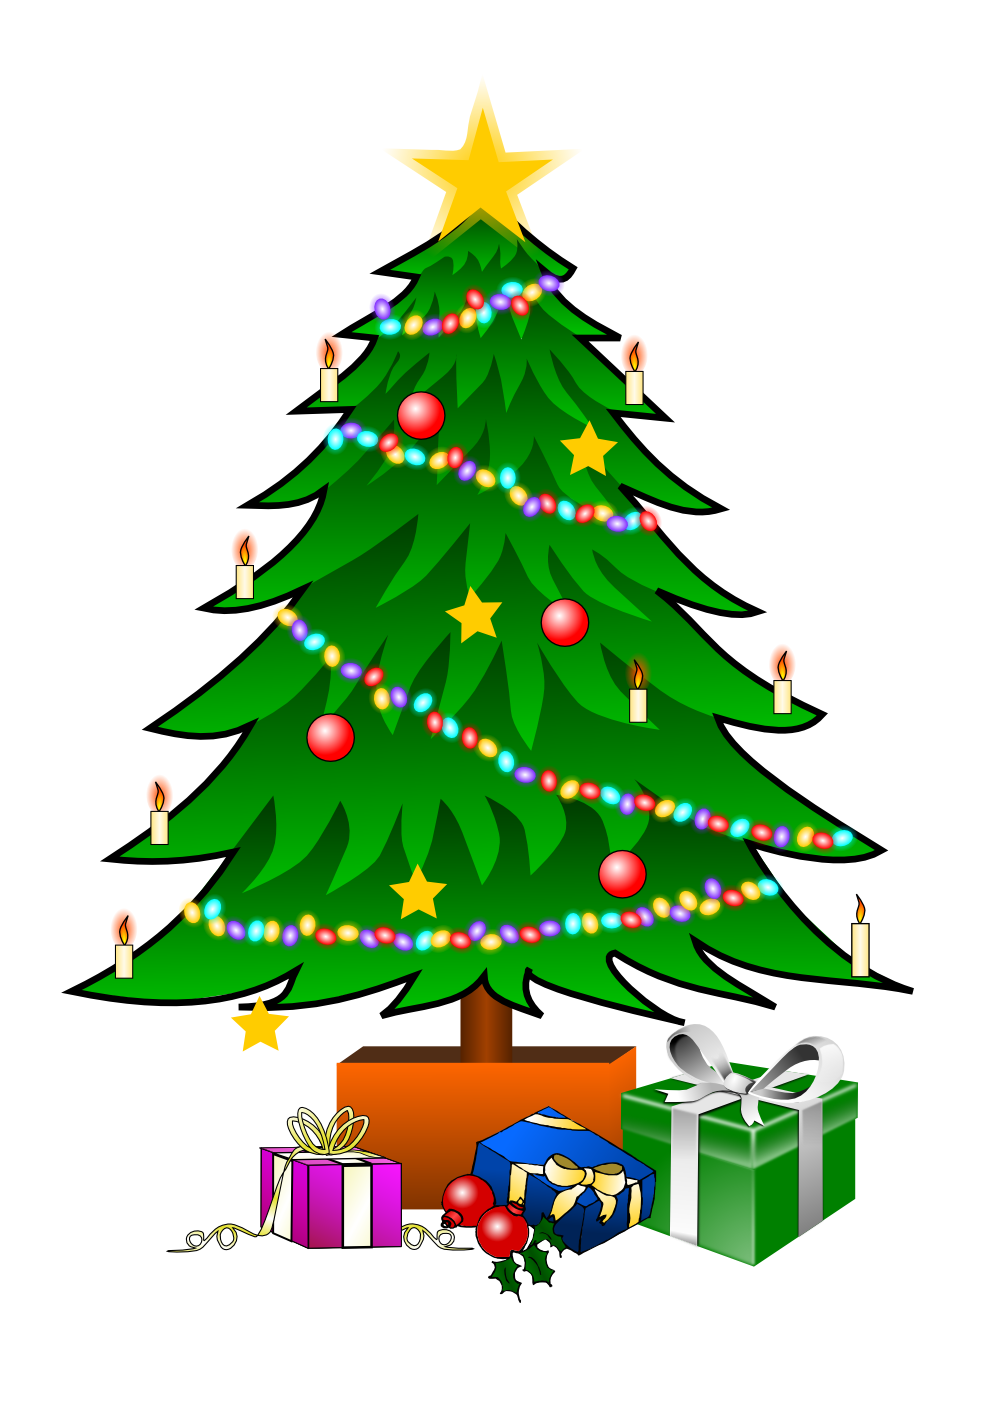 christmas tree clip art watermark | clipart panda - free clipart